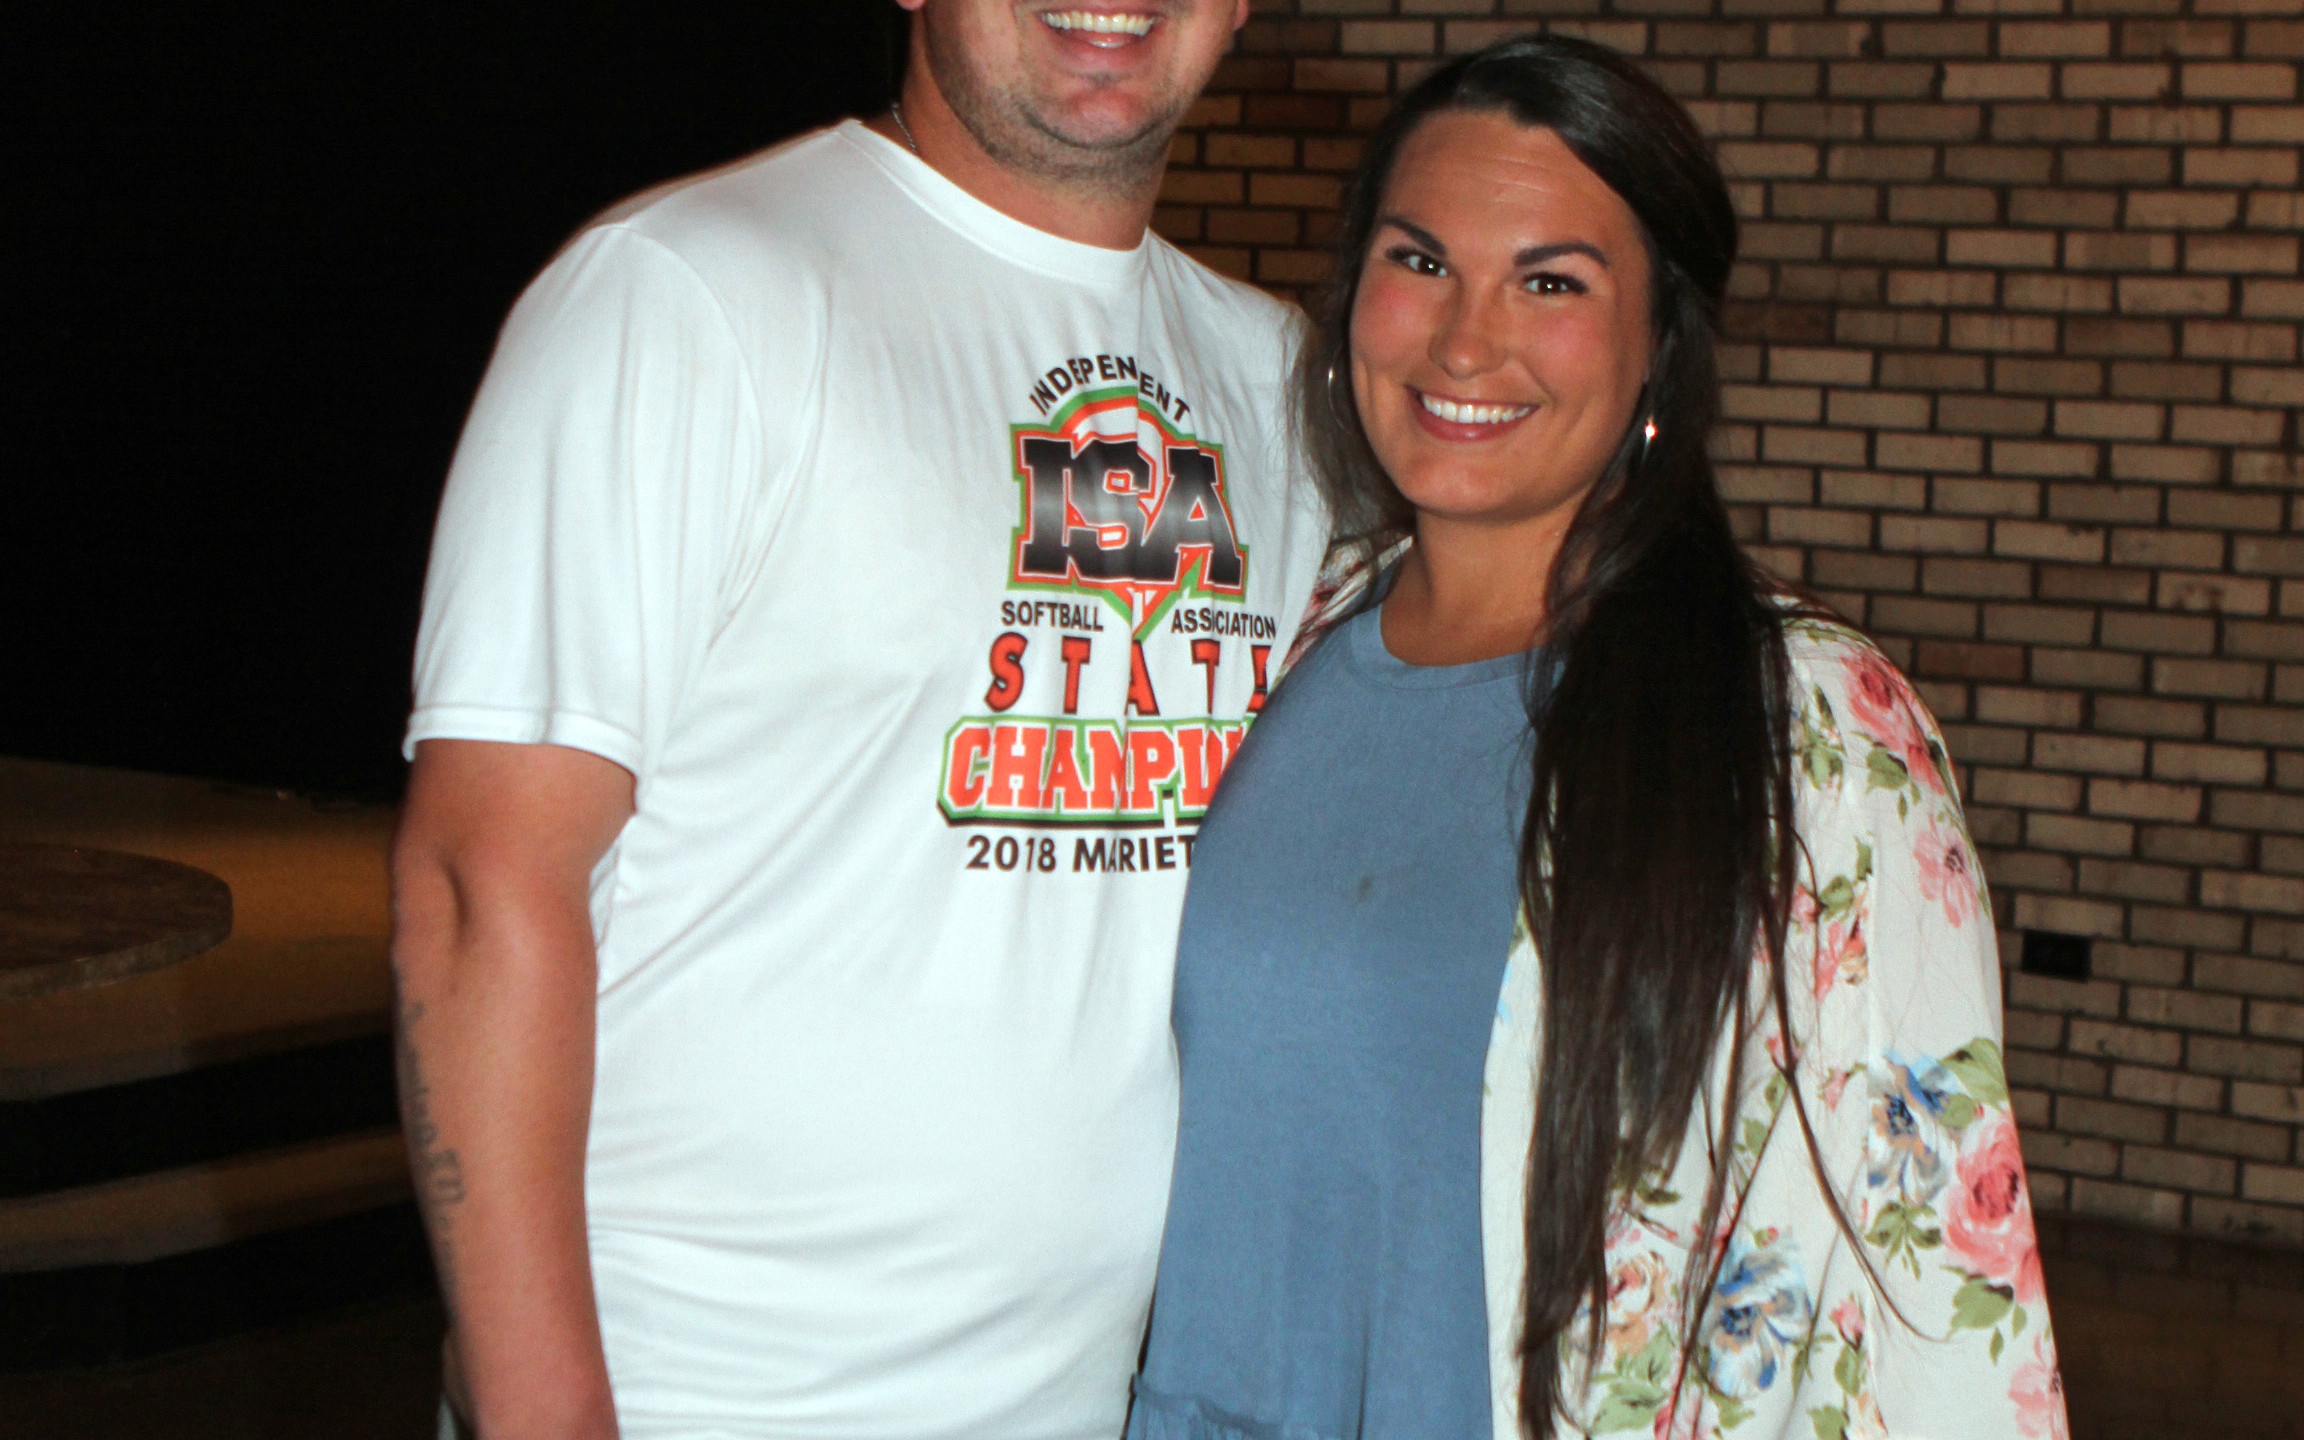 Justin Gregory, Lacey Grimes